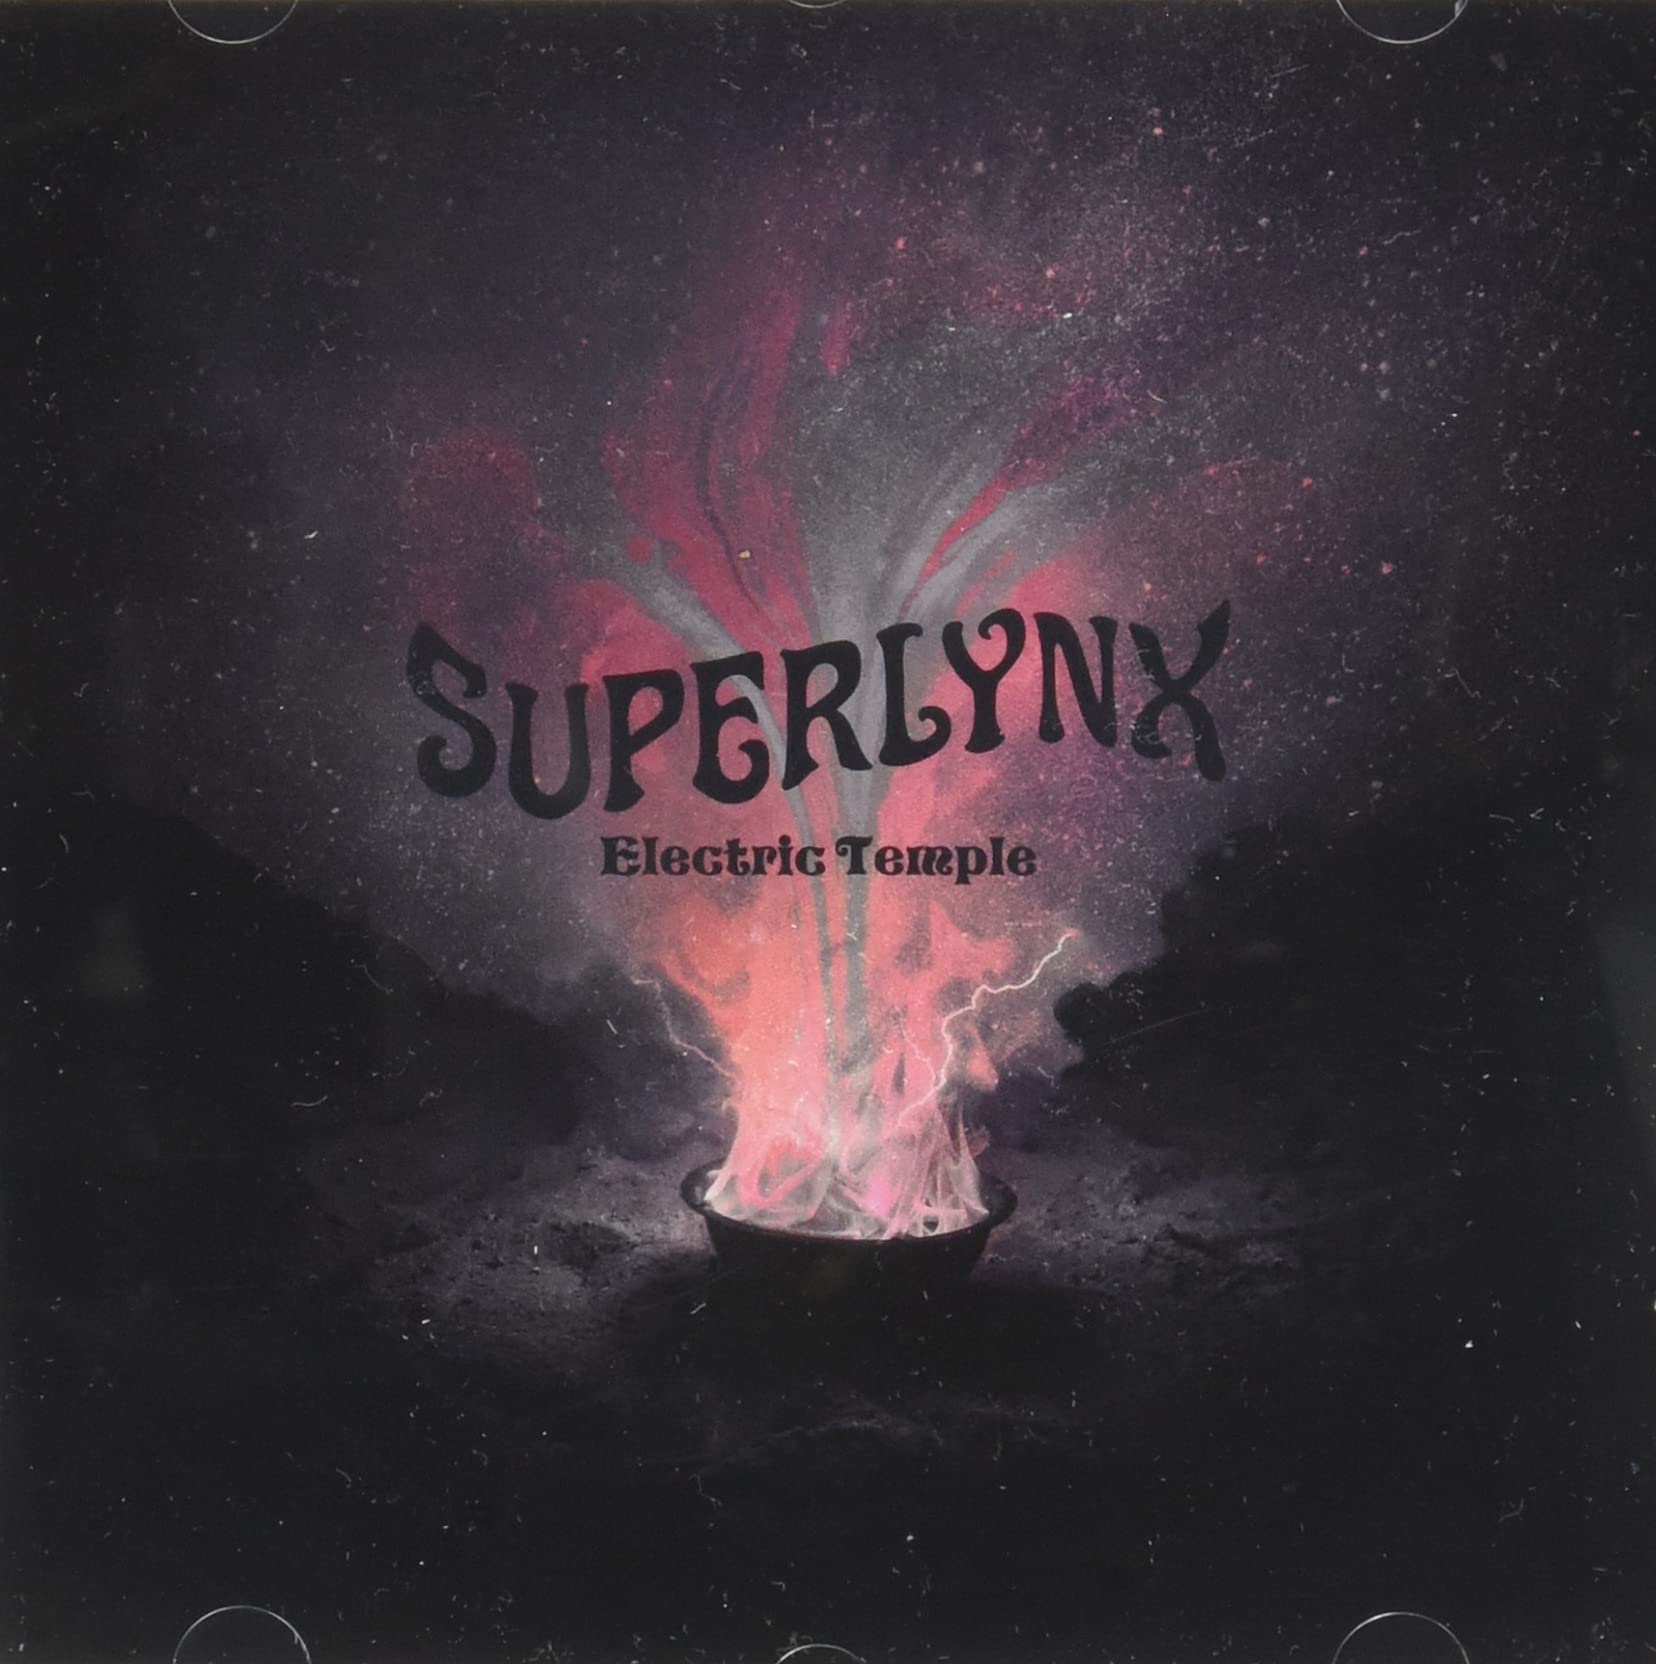 Superlynx - Electric Temple (2021) [FLAC] Download